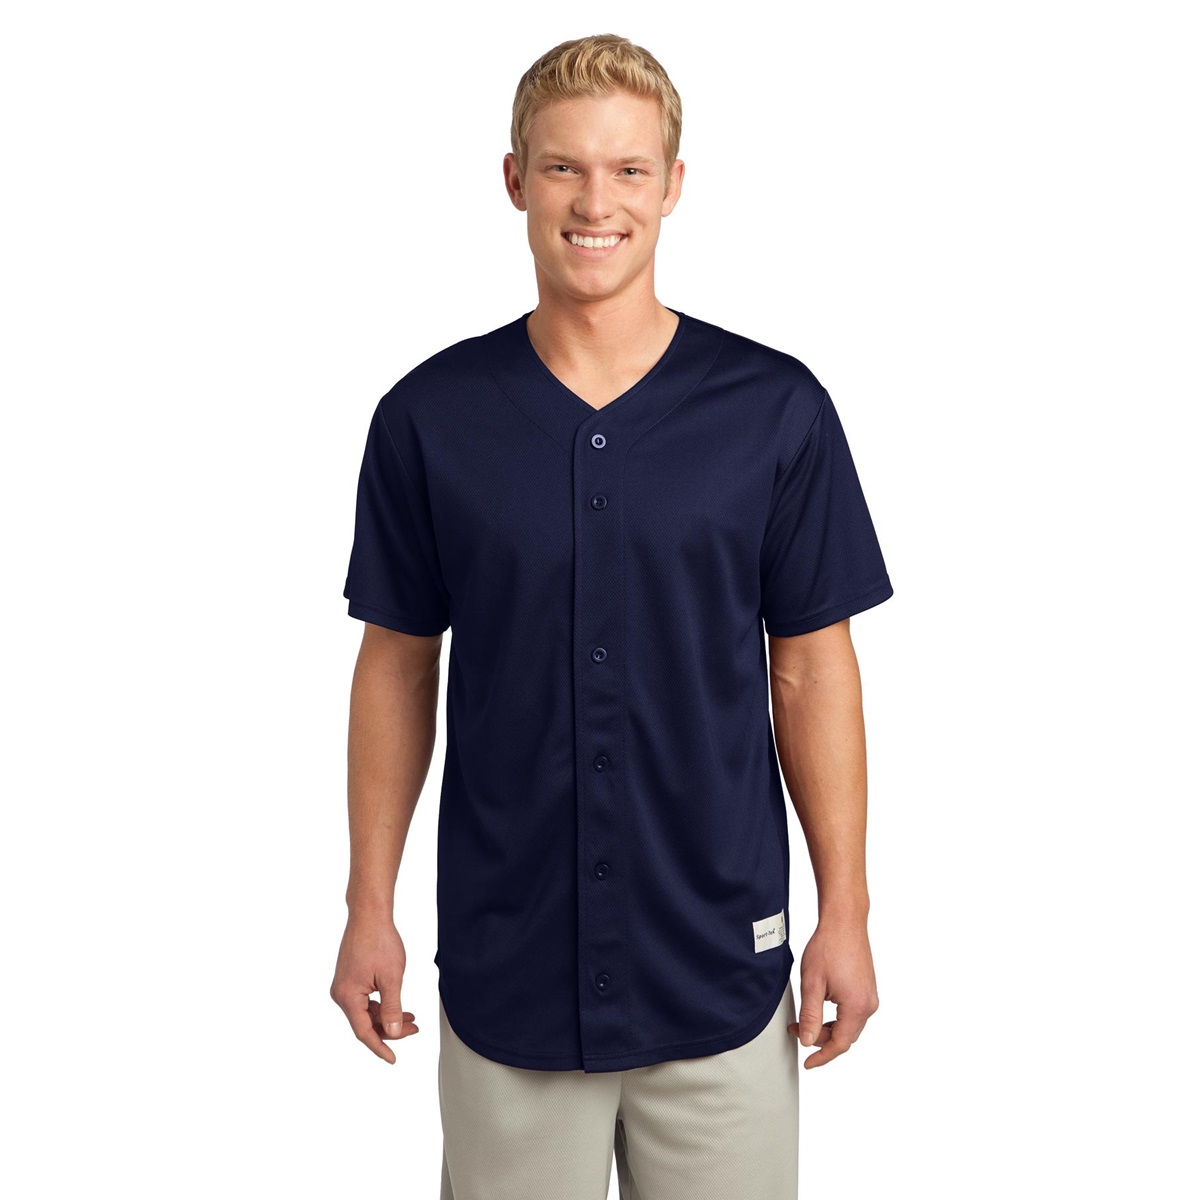 Sport Tek St220 Posicharge Tough Mesh Full Button Jersey T